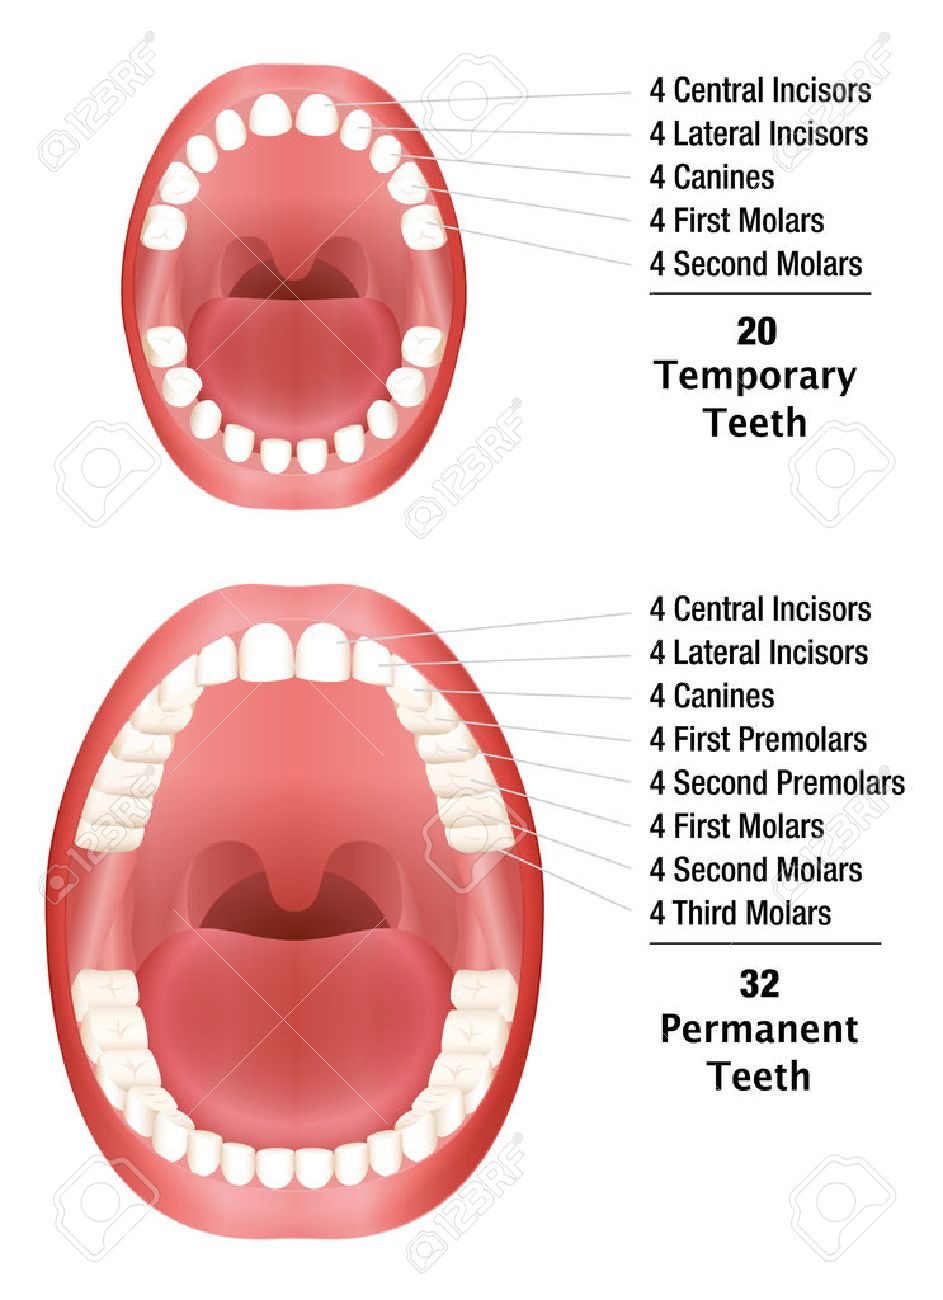 Temporary teeth permanent teeth number of milk teeth and temporary teeth permanent teeth number of milk teeth and adult teeth isolated illustration ccuart Image collections